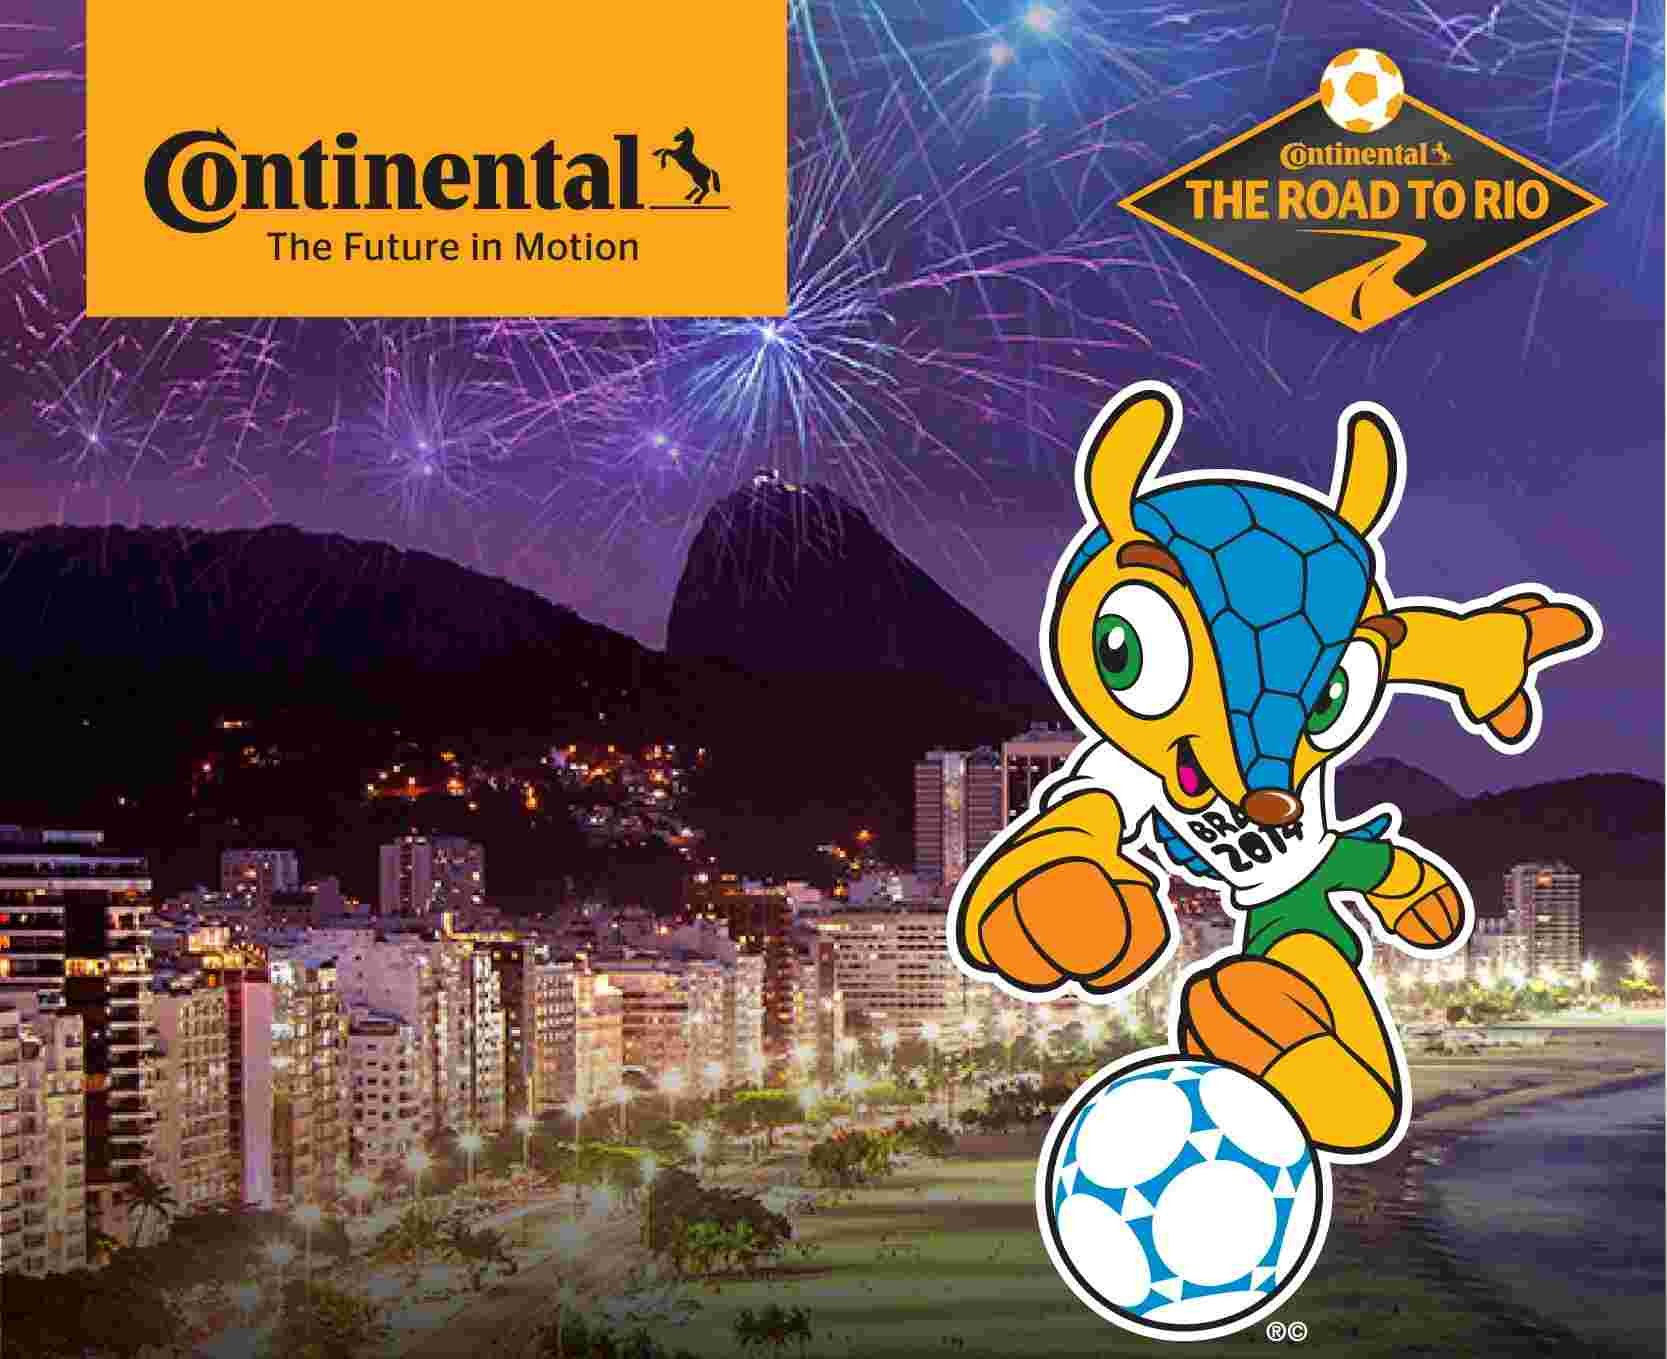 Fuleco, the 2014 World Cup mascot